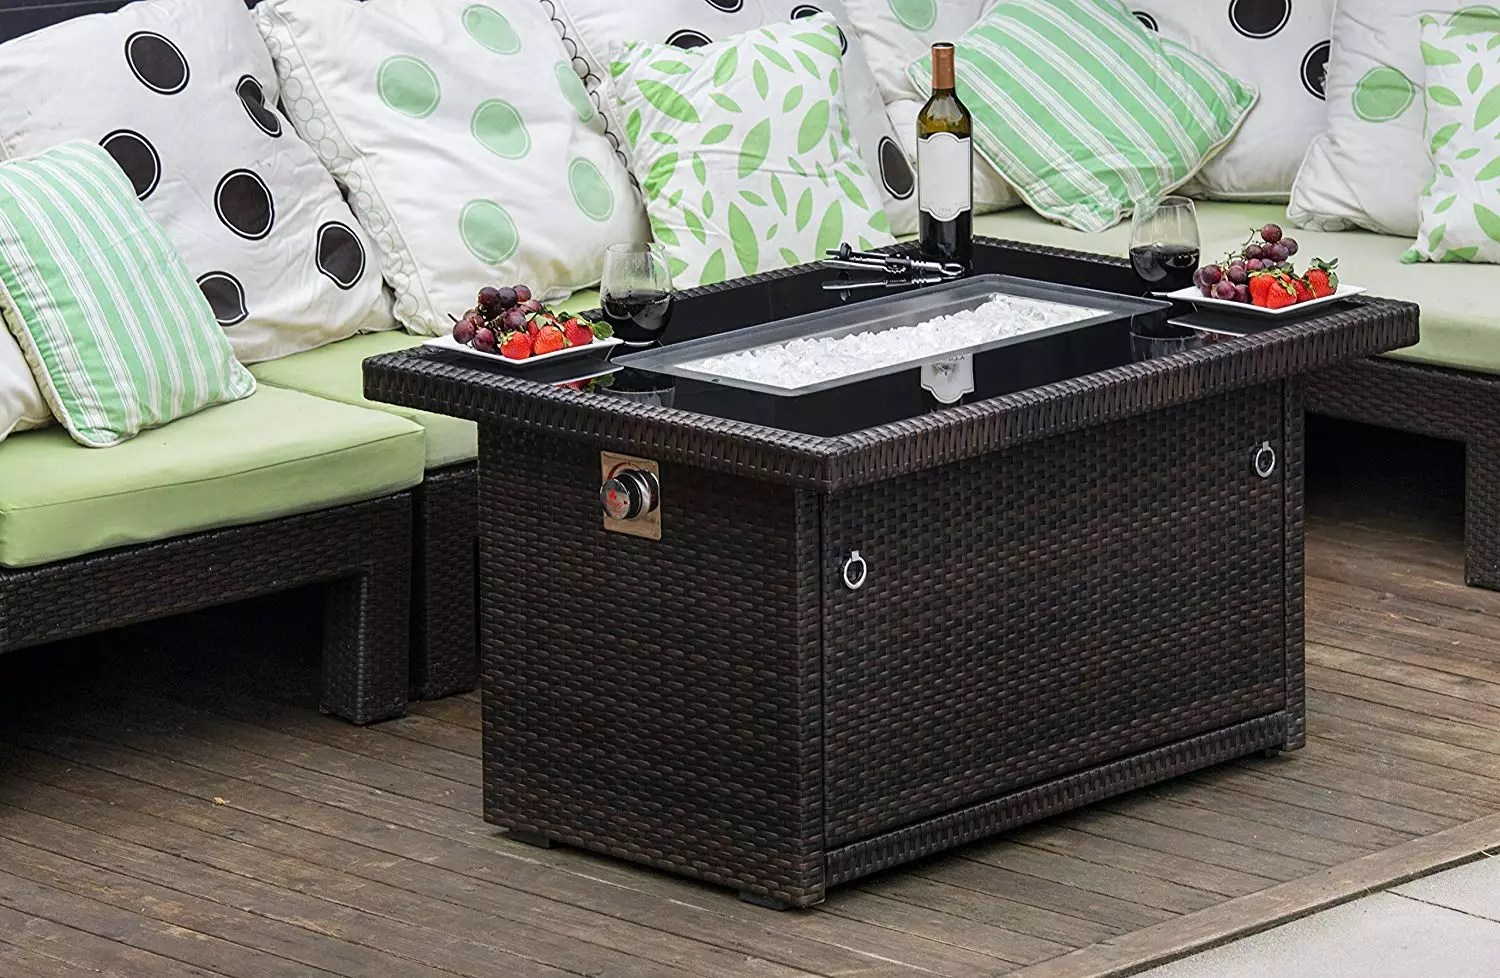 Outland Living Series 401 Reviews | Best Fire Pits ... on Outland Living 401 id=50498